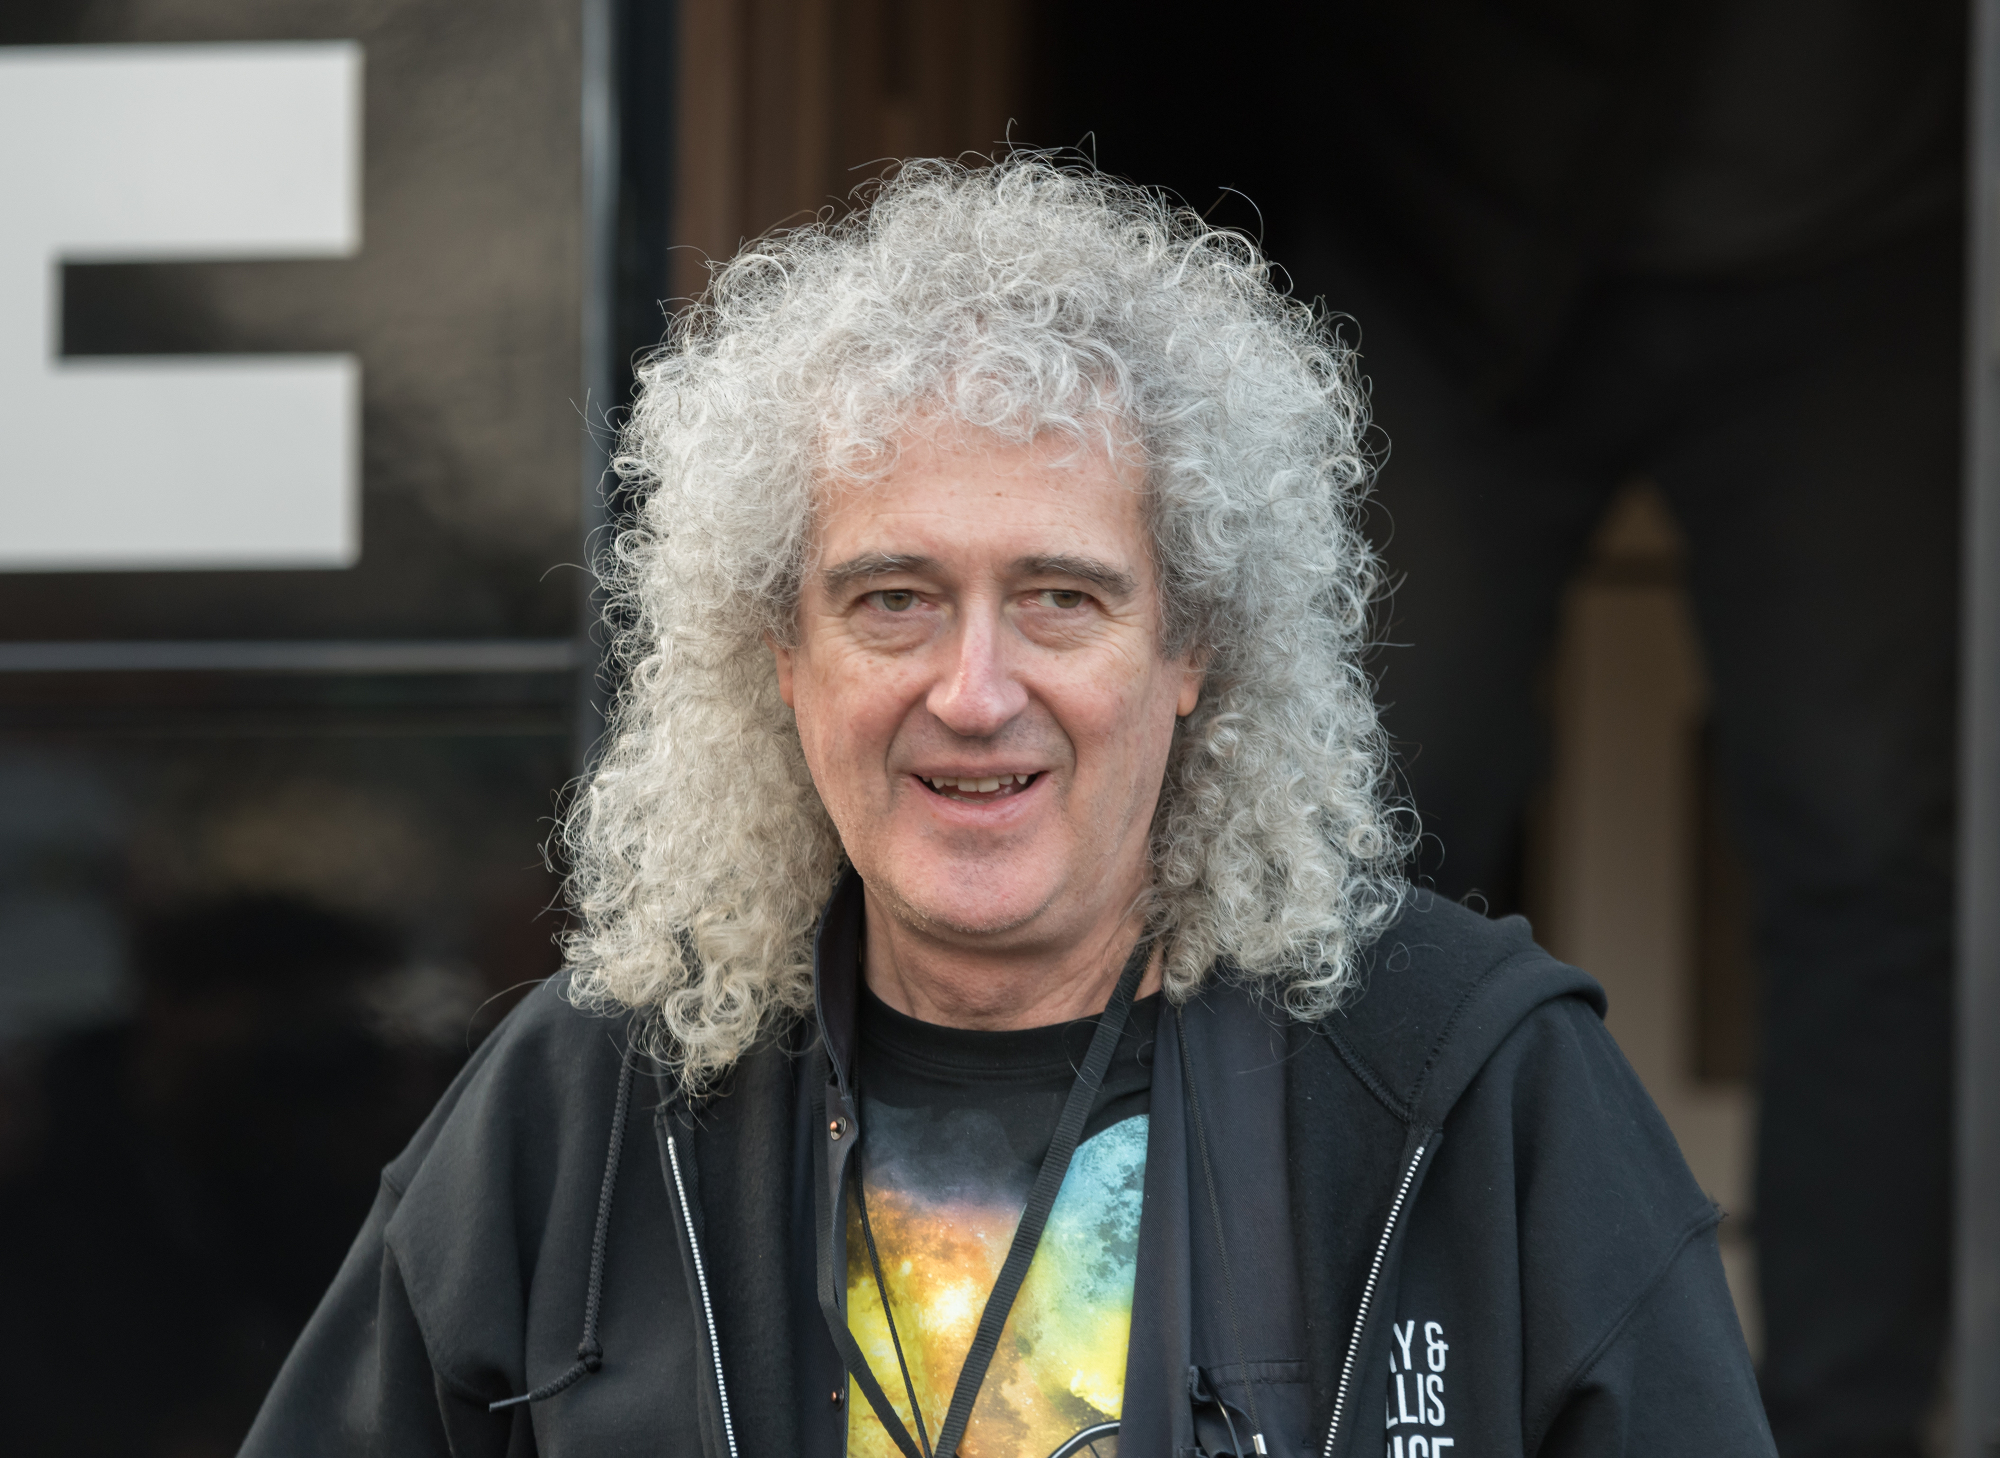 Brian May Amp Kerry Ellis One Voice Tour Milan 25 02